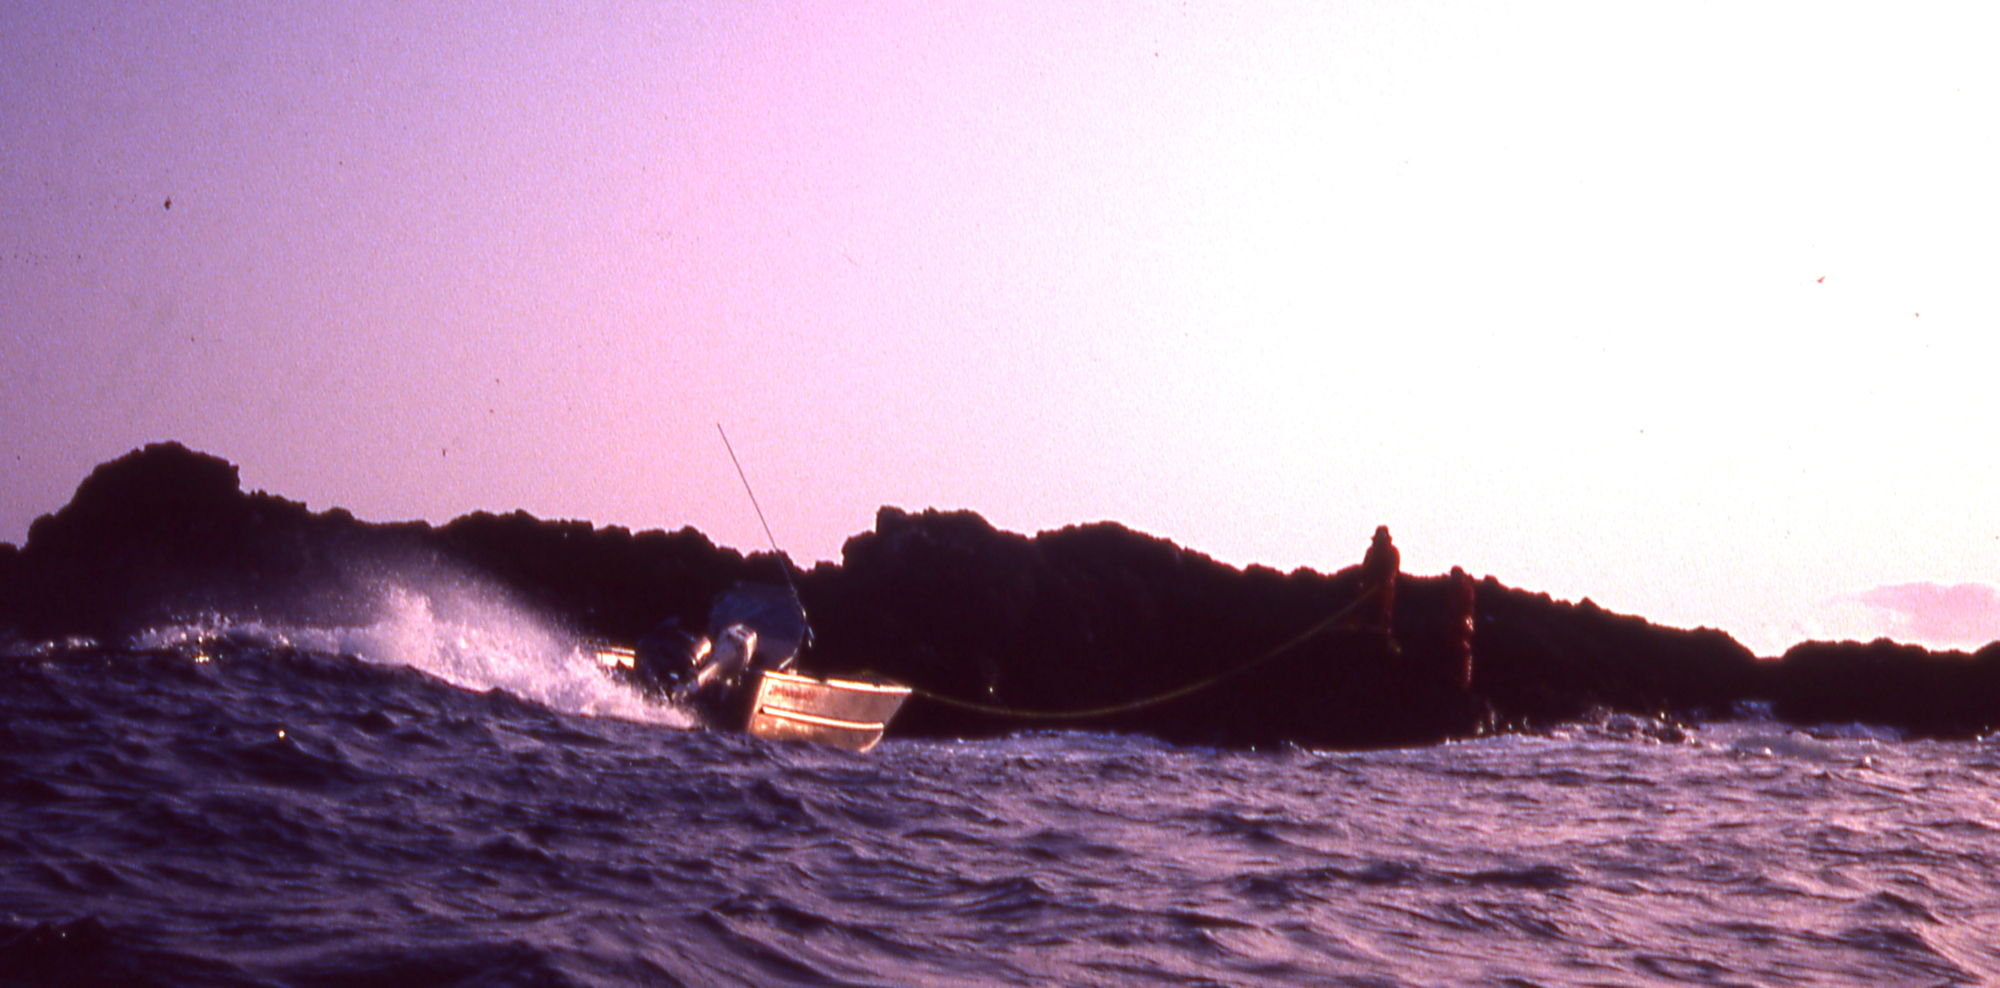 two men on a reef use a line to haul in their boat